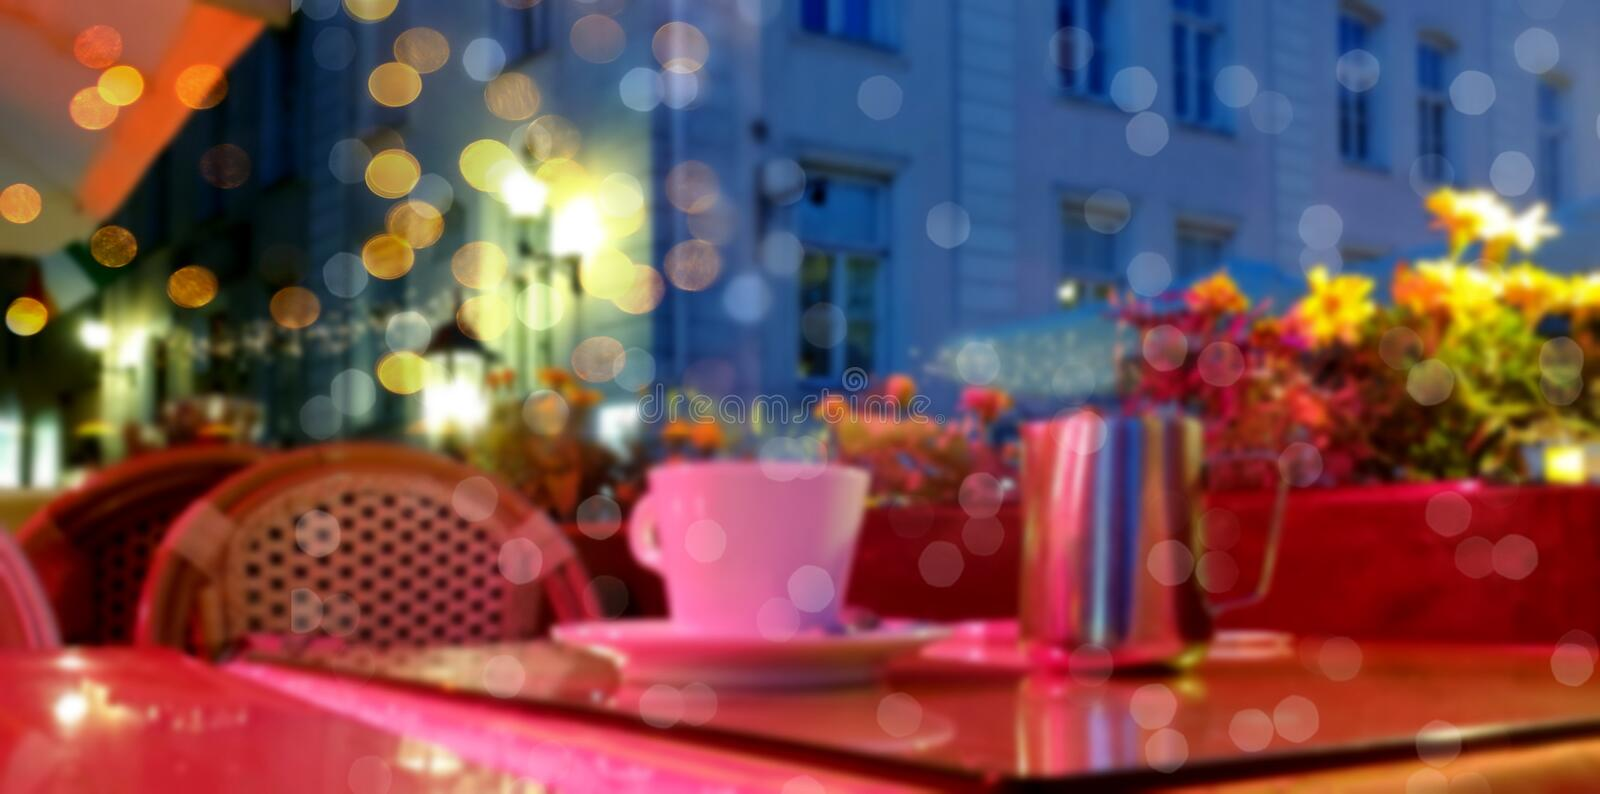 City holiday light blurring Street cafe bokeh g city light evening restaurant table cup of c. People walk under umbrellas rainy evening in Tallinn ,town square stock photos